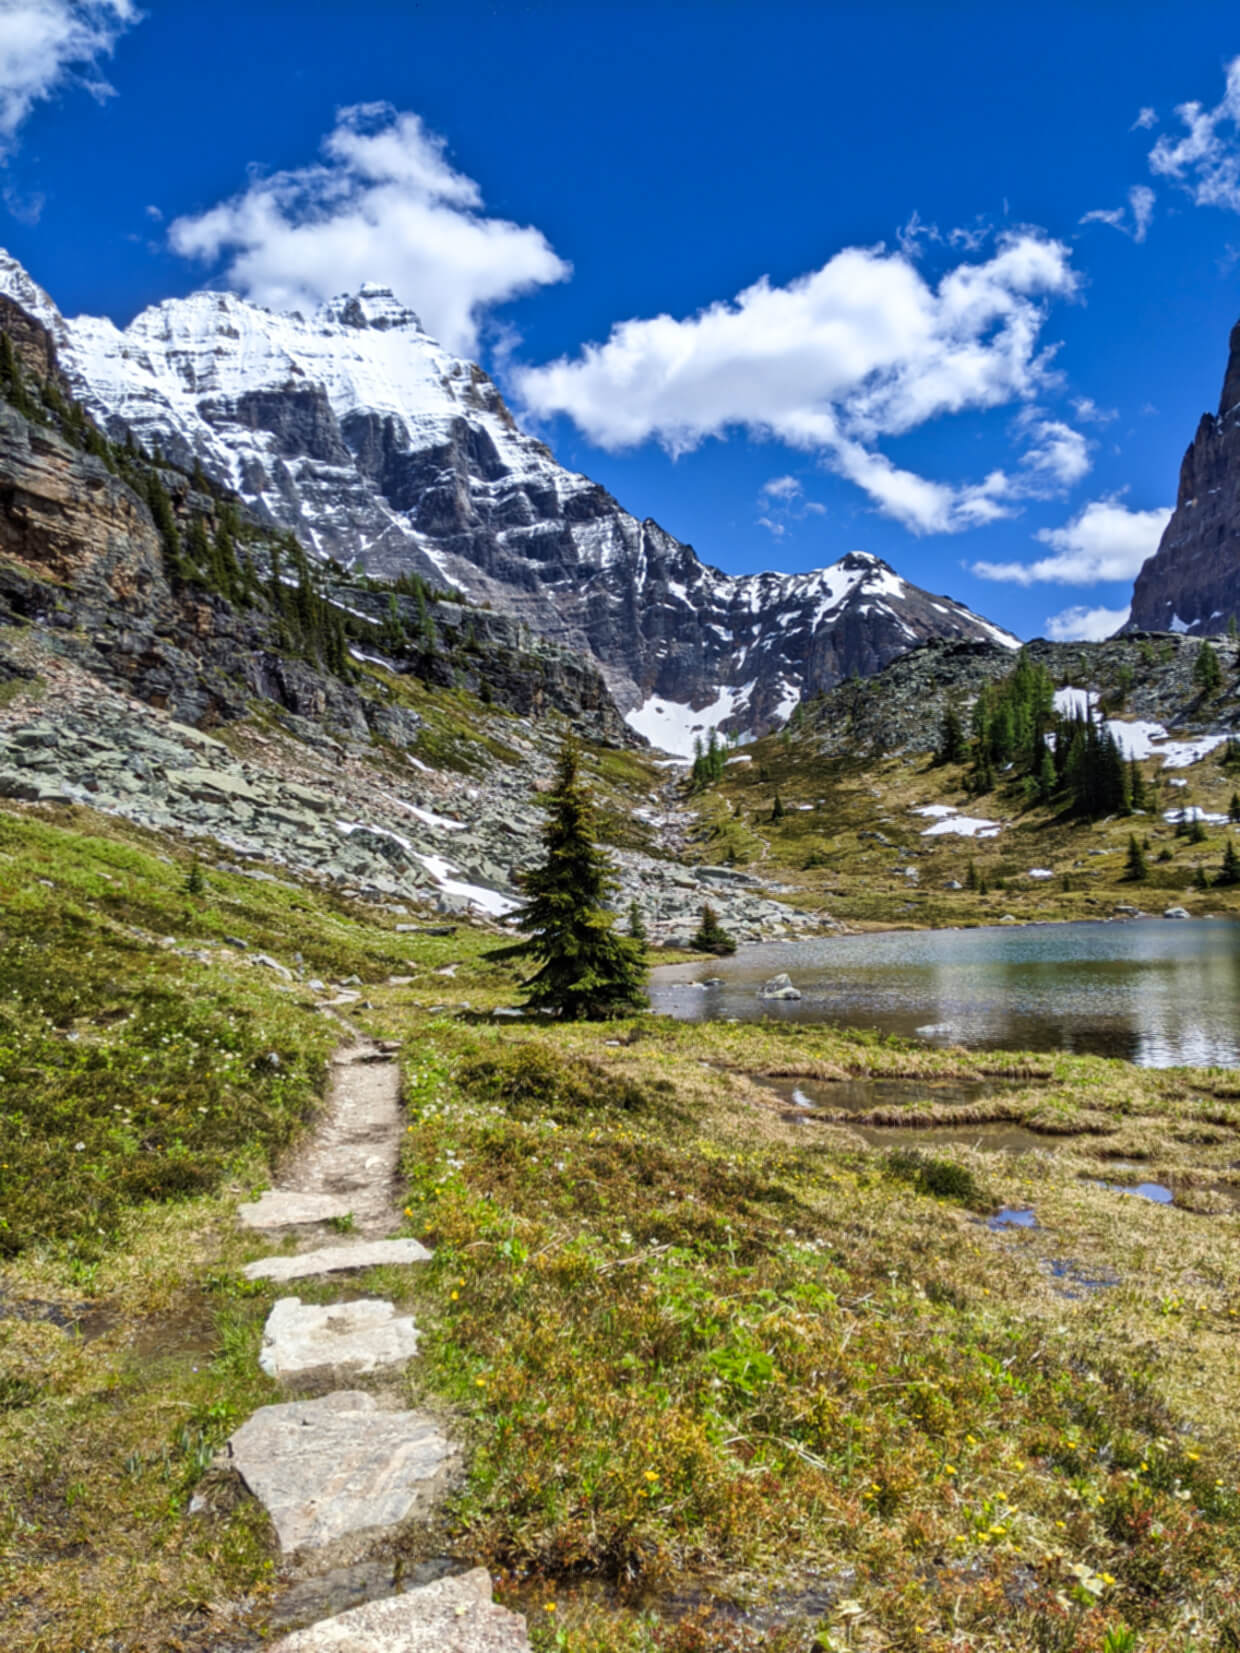 Vertical image showing hiking path leading towards camera, traversing alpine meadow and rocky areas, passing by a calm lake and backdropped by snowy mountains